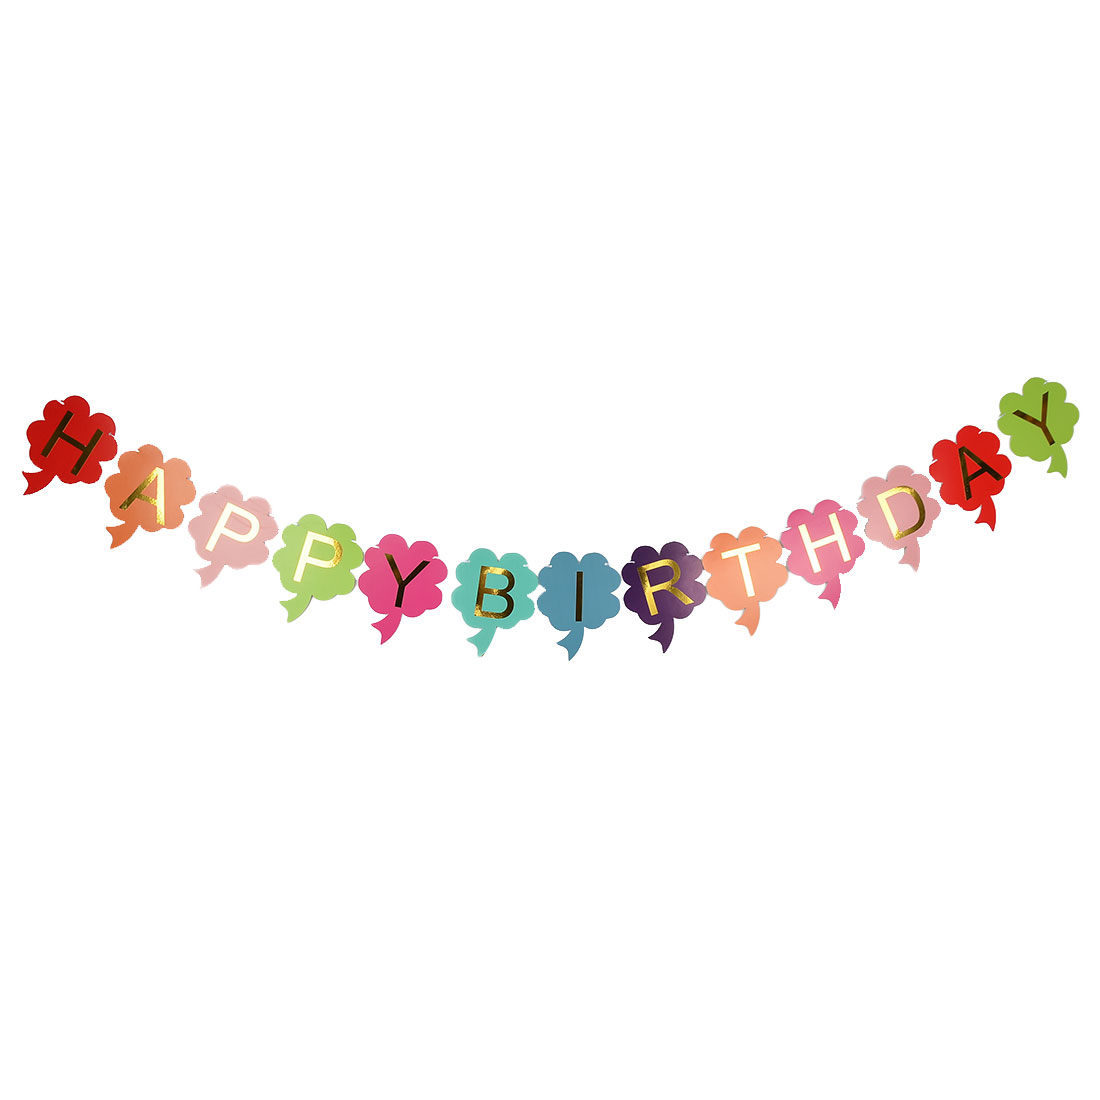 Party Paper HAPPY BIRTHDAY Letters Flower Shape DIY Photo Prop Banner Multicolor